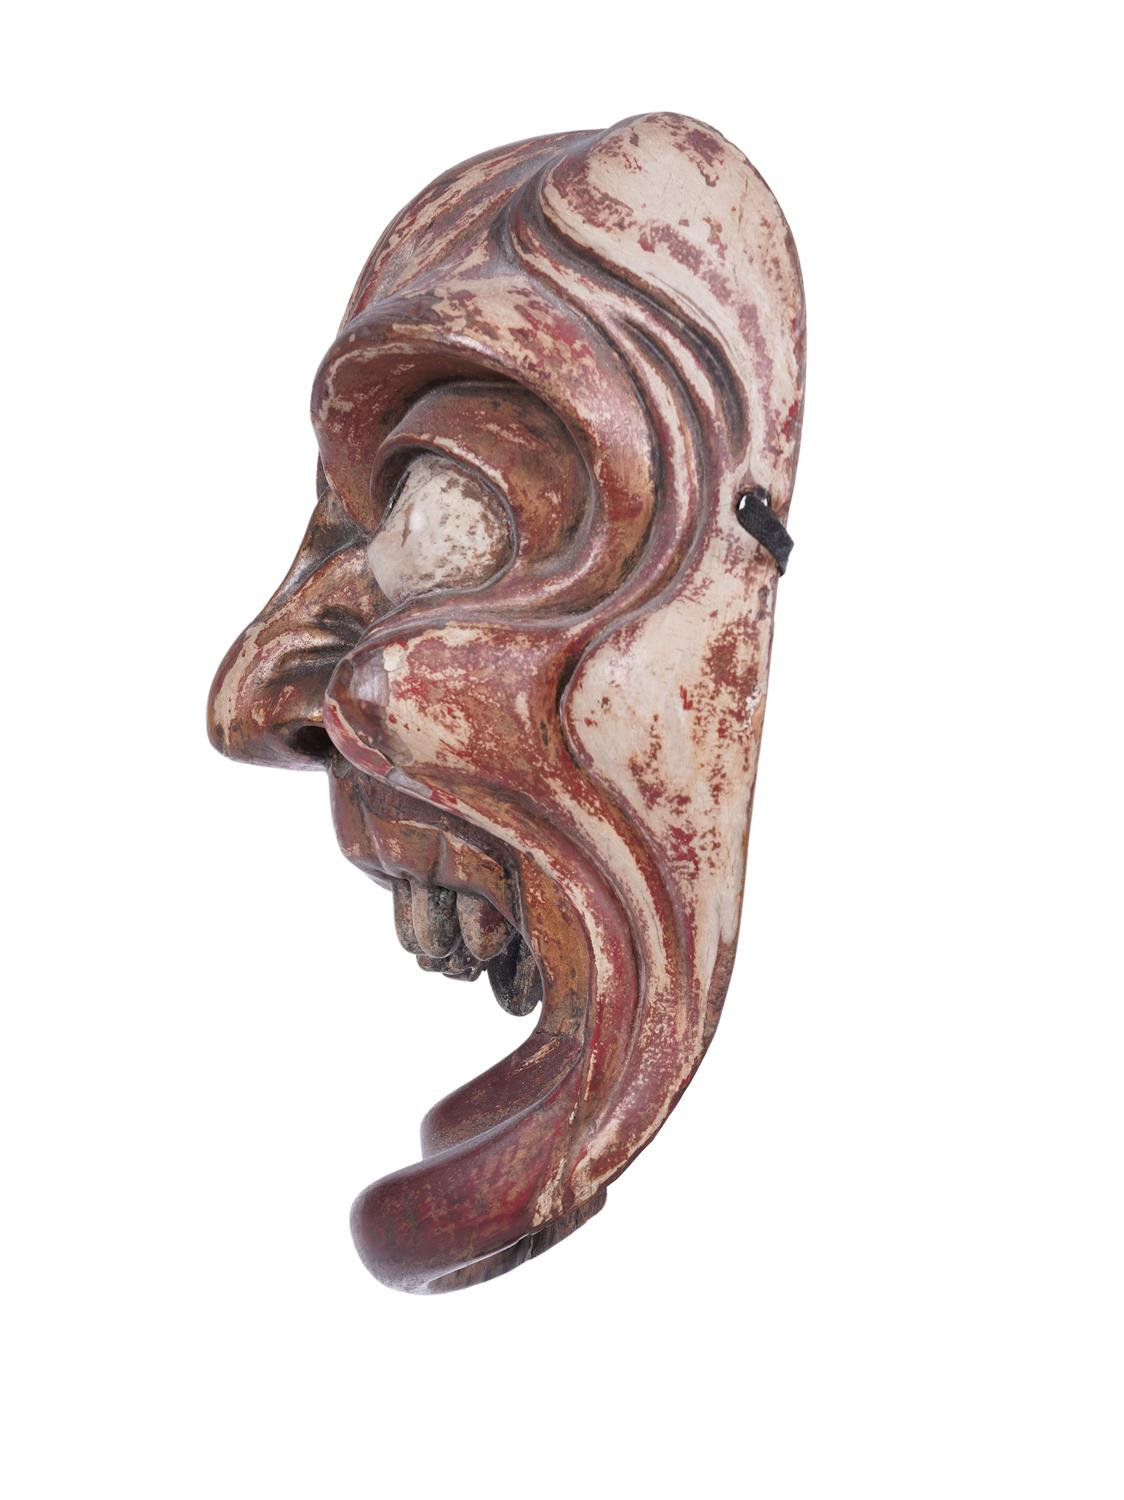 .A LACQUERED 'TOOTHLESS' WOODEN MASK Japan, 19th century H: 22 cm - w: 16 cm Provenance: A curated - Image 4 of 4